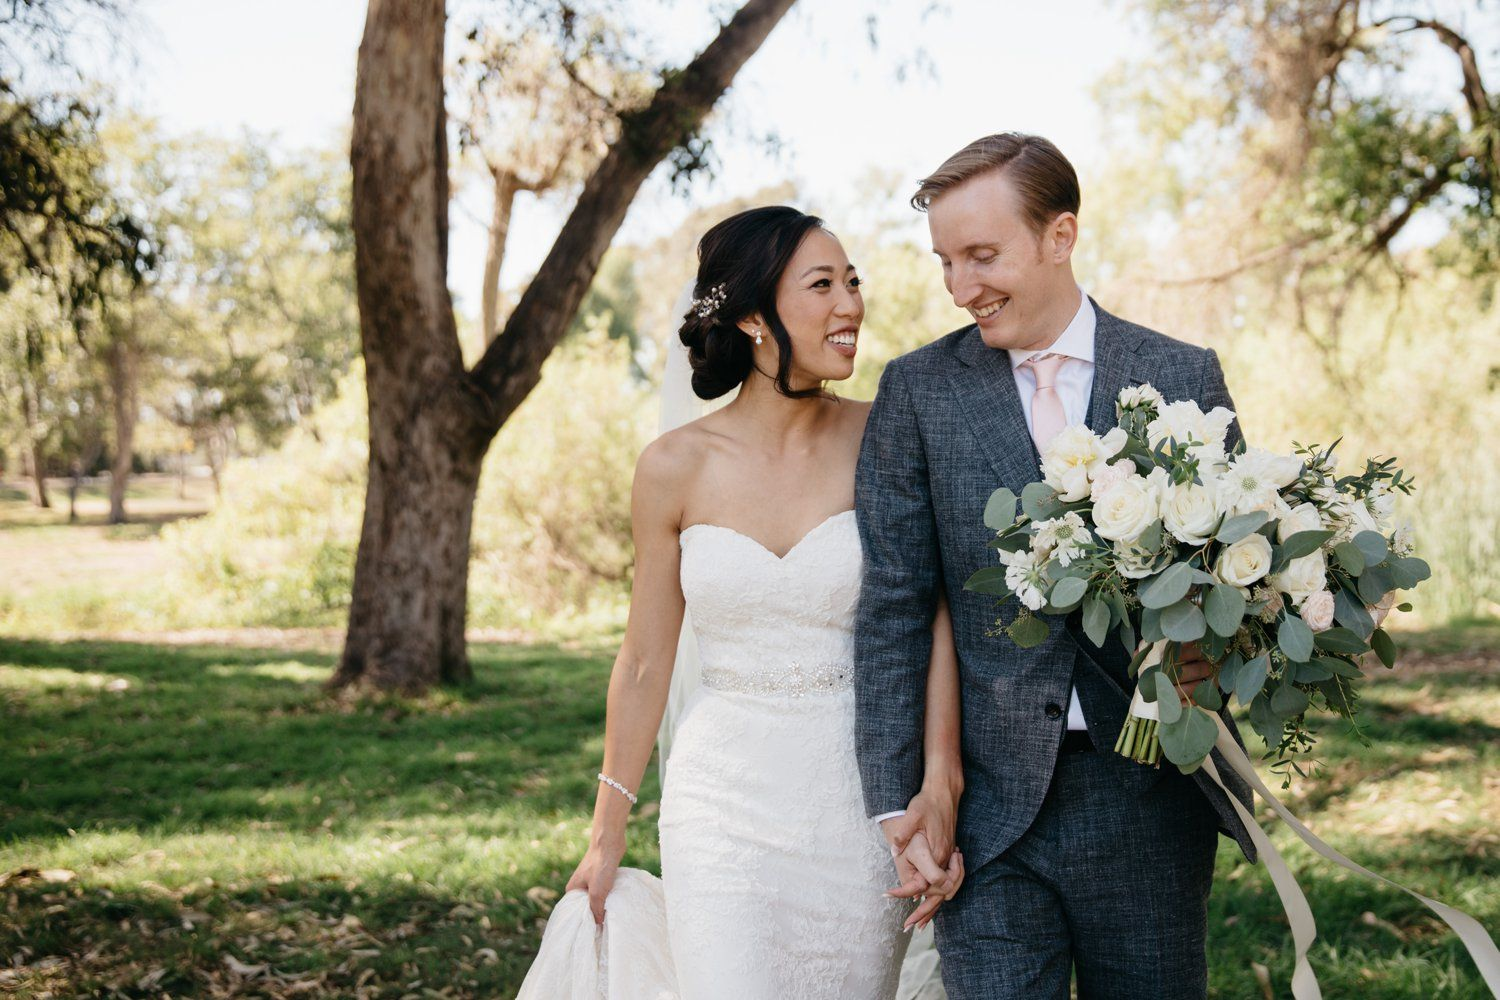 Light And Airy Wedding At The Venue In Huntington Beach With Hans Jessica